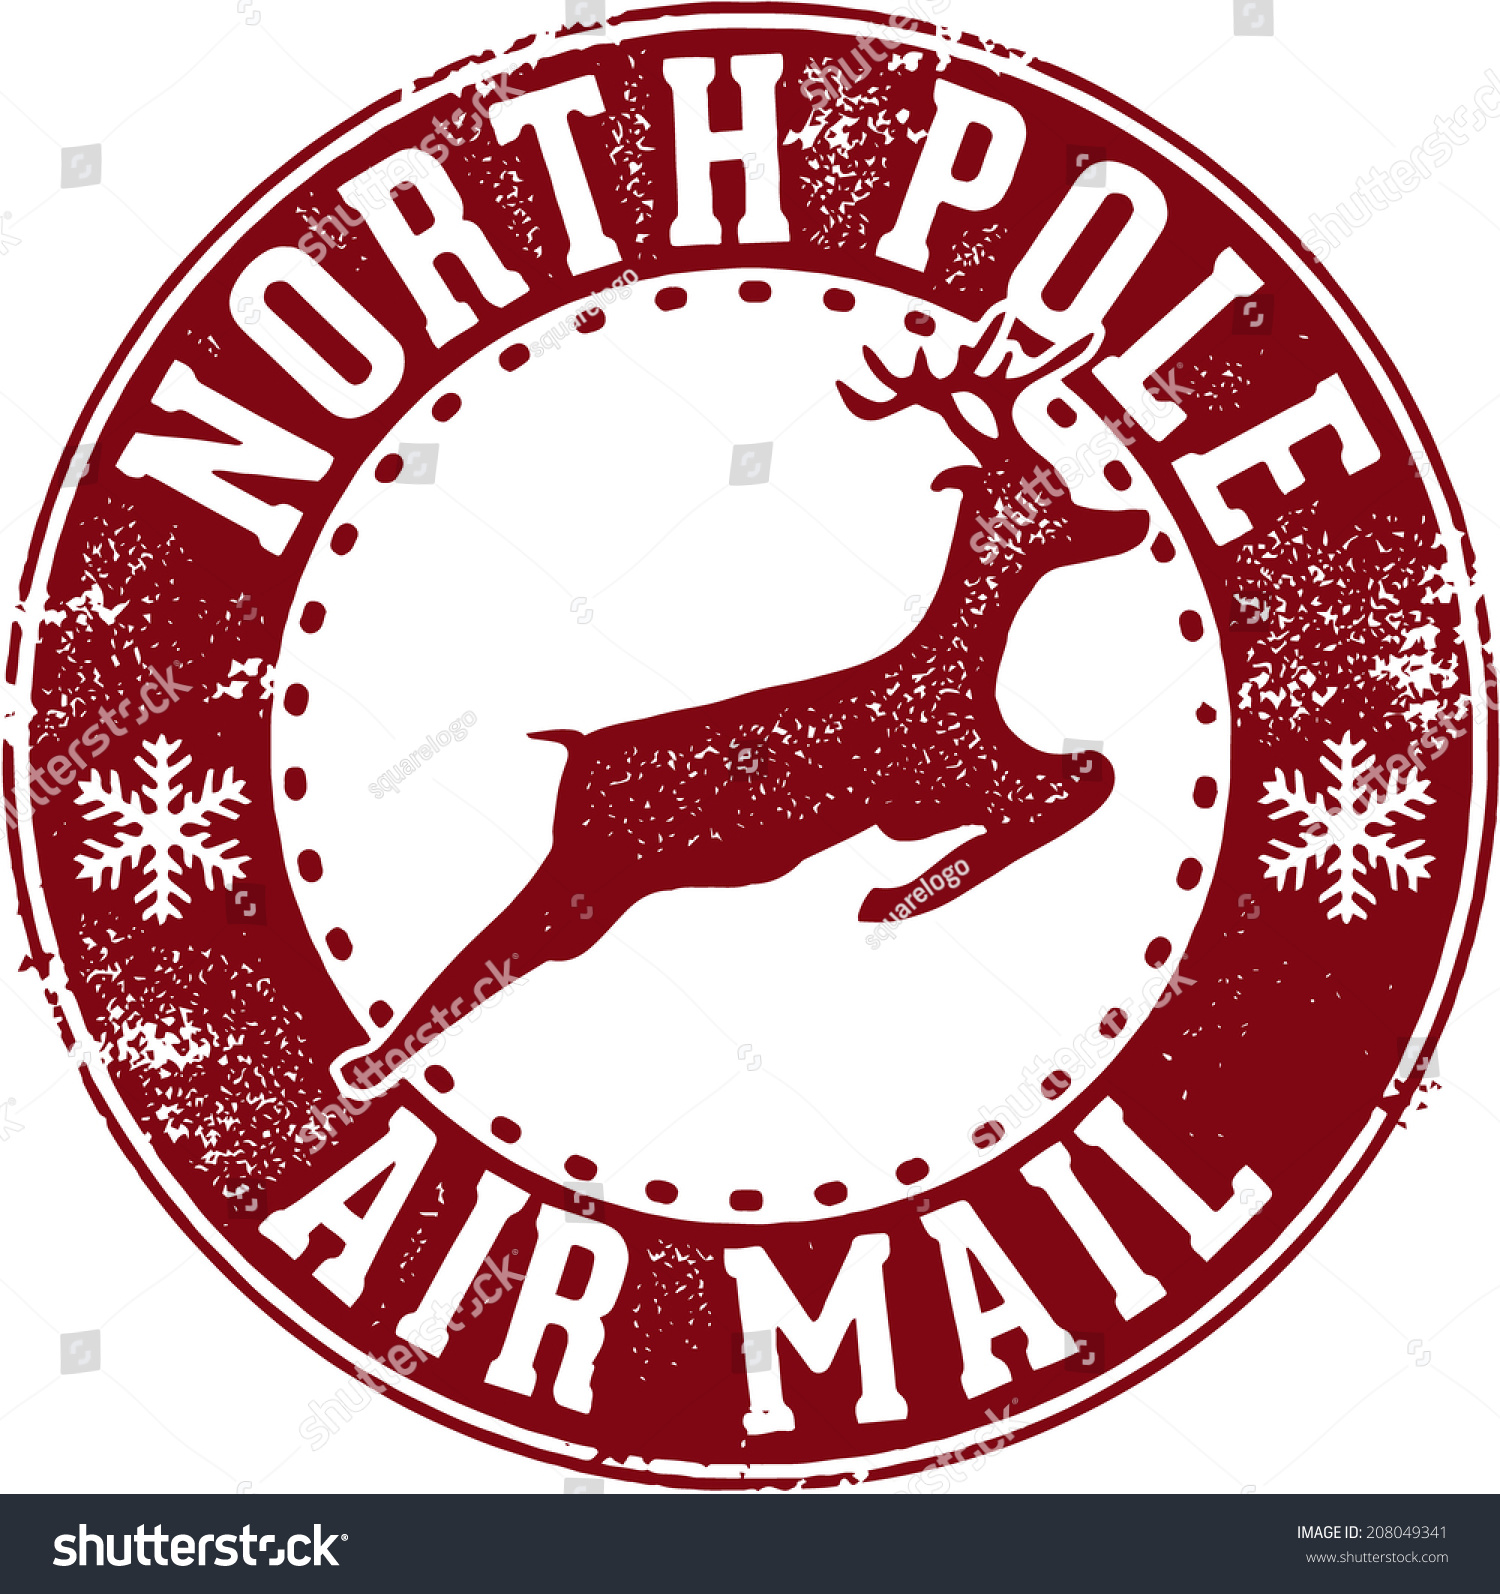 North Pole Air Mail Christmas Santa Stamp Stock Vector Illustration ...